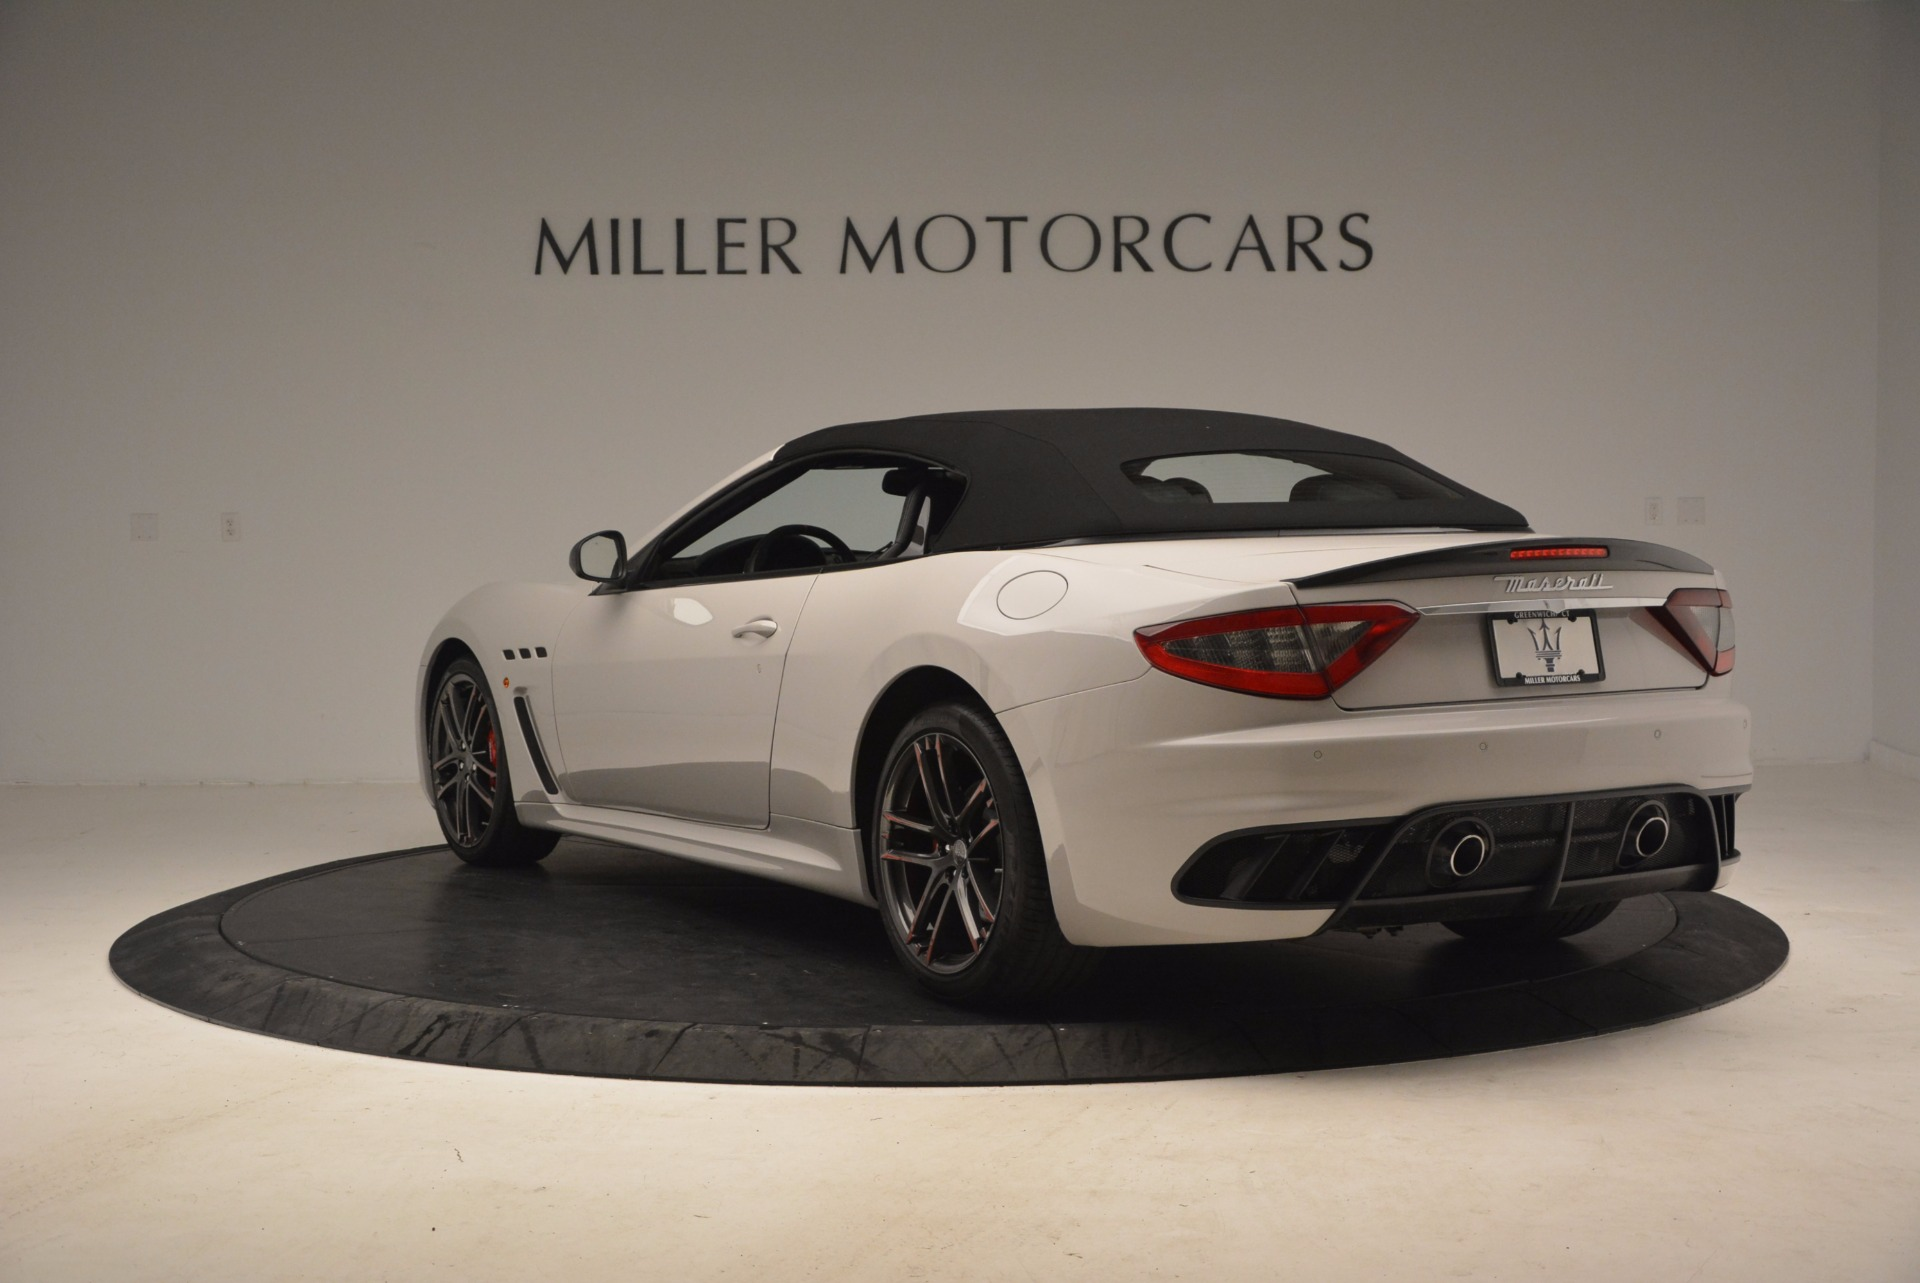 Used 2015 Maserati GranTurismo MC Centennial For Sale In Westport, CT 1107_p17